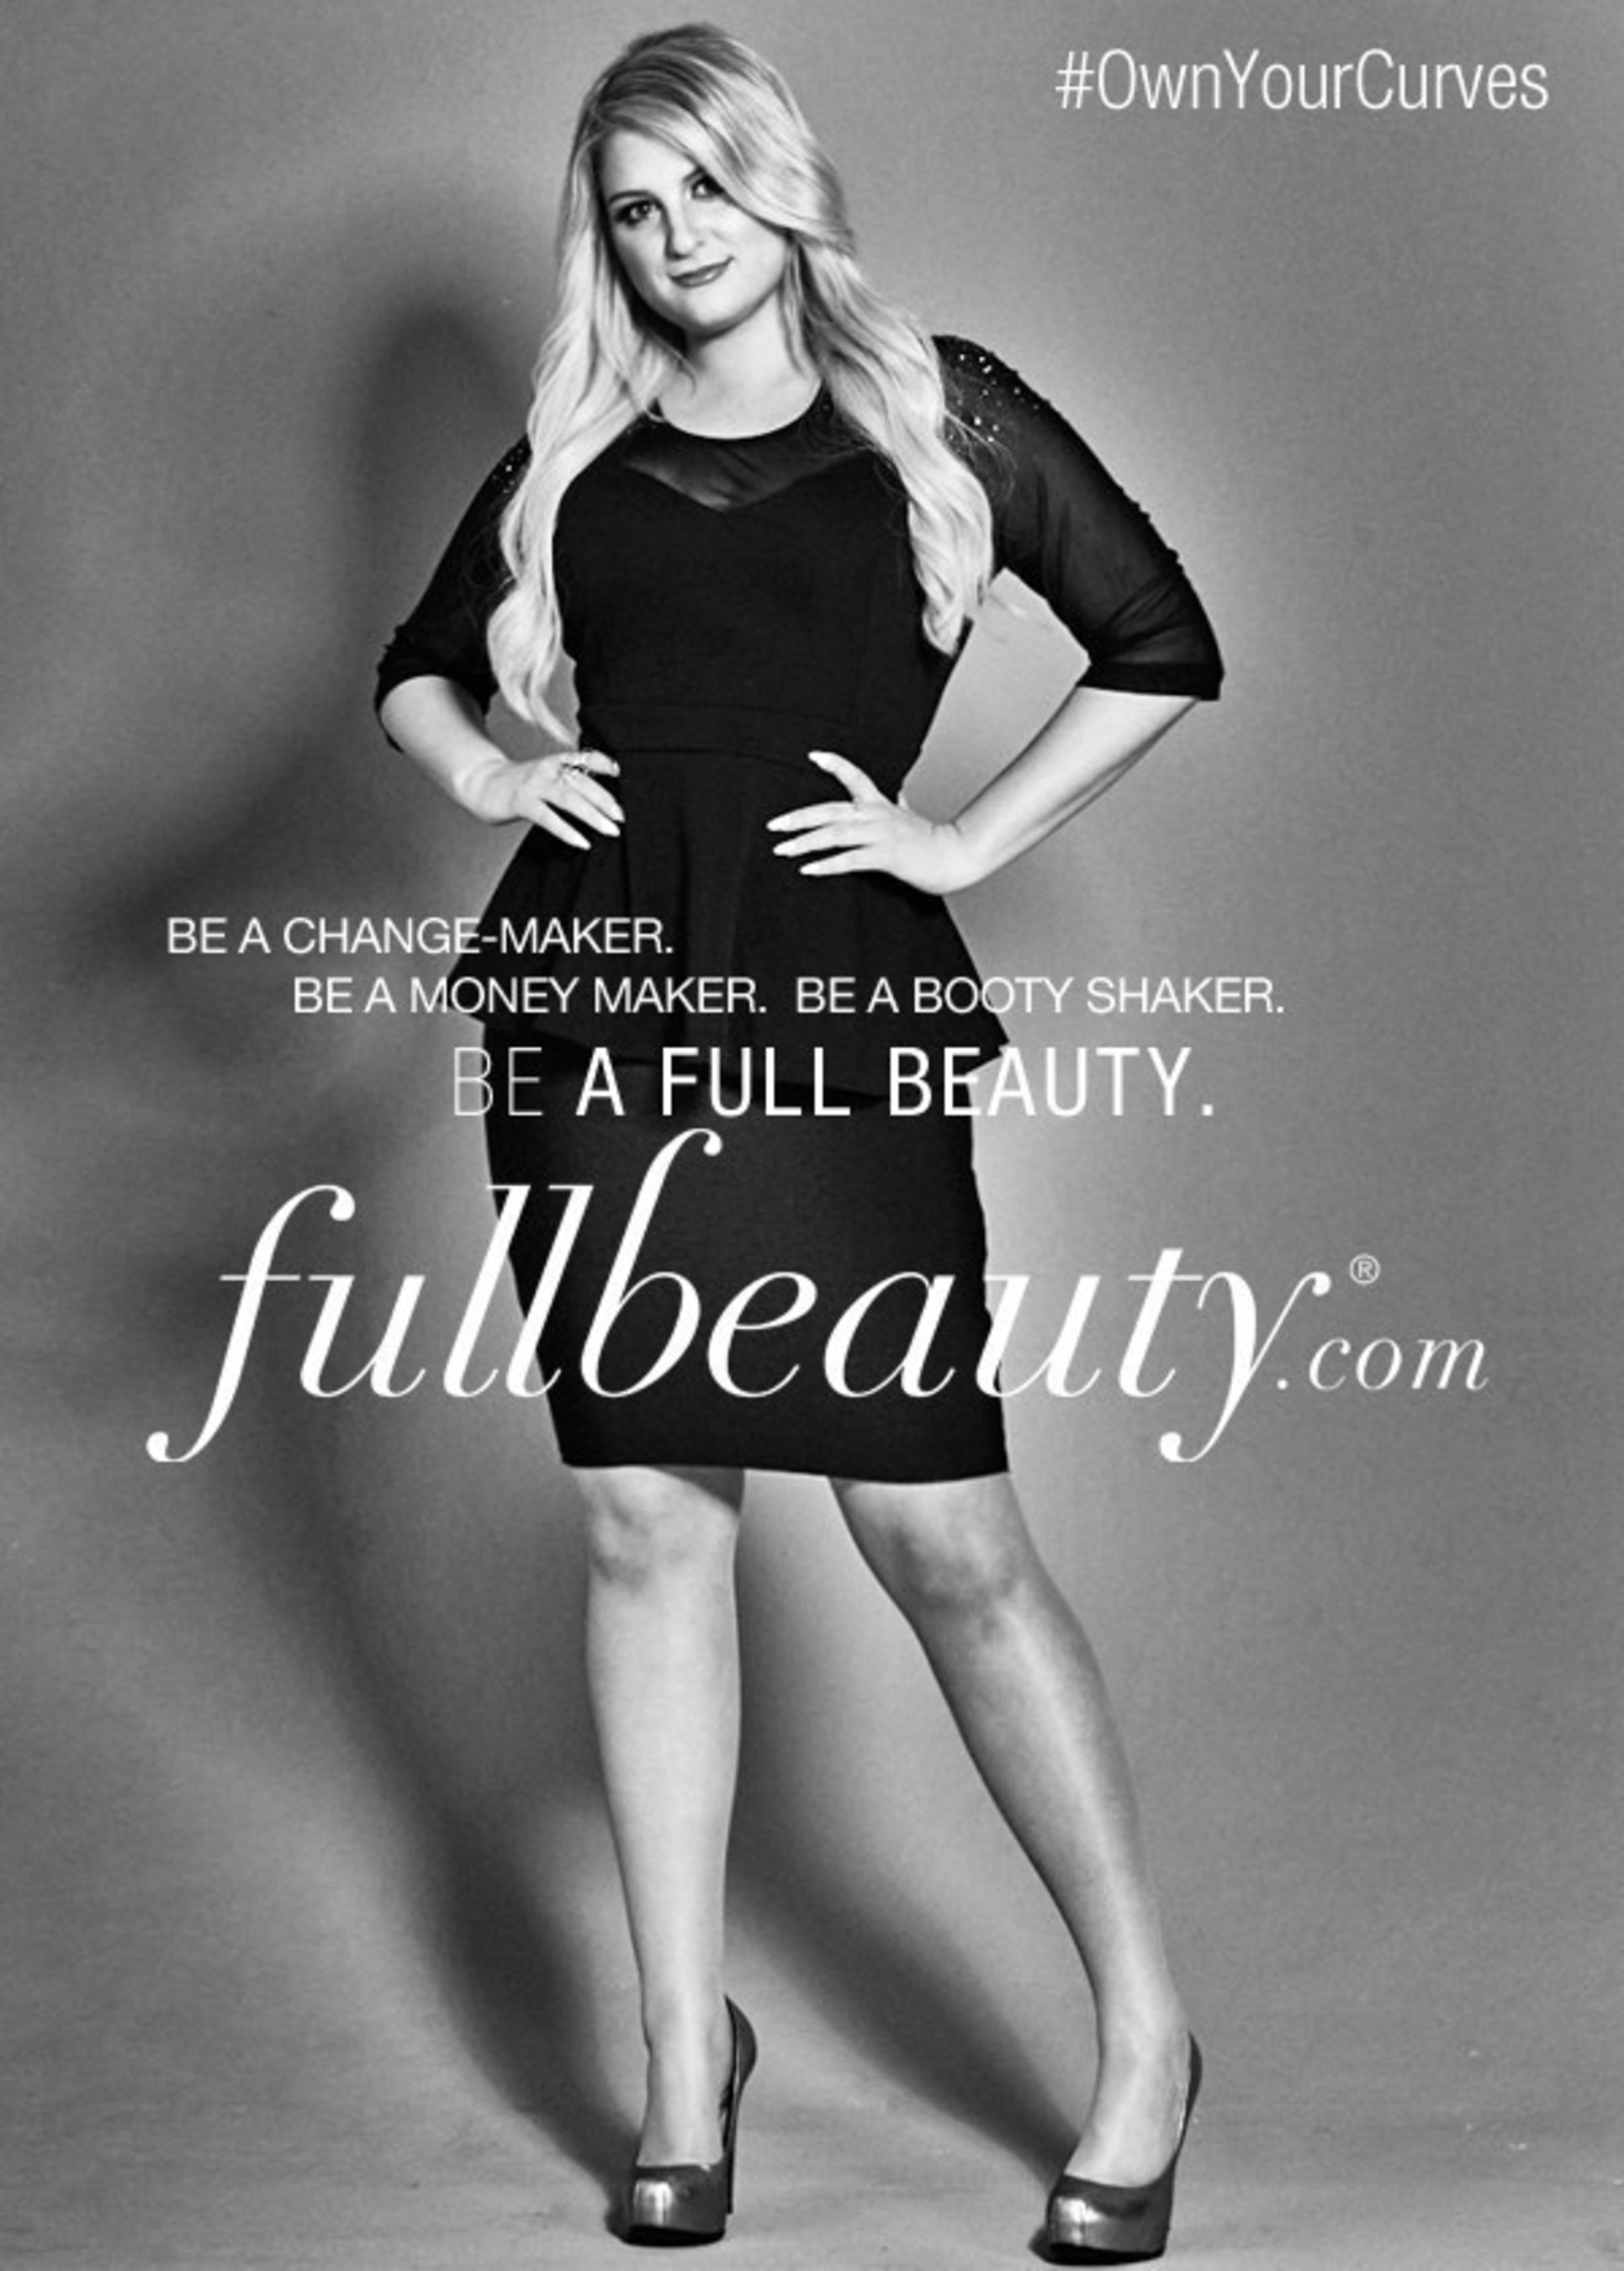 5a35aa3f11c fullbeauty.com Launches  OwnYourCurves Ad Campaign Featuring Pop ...